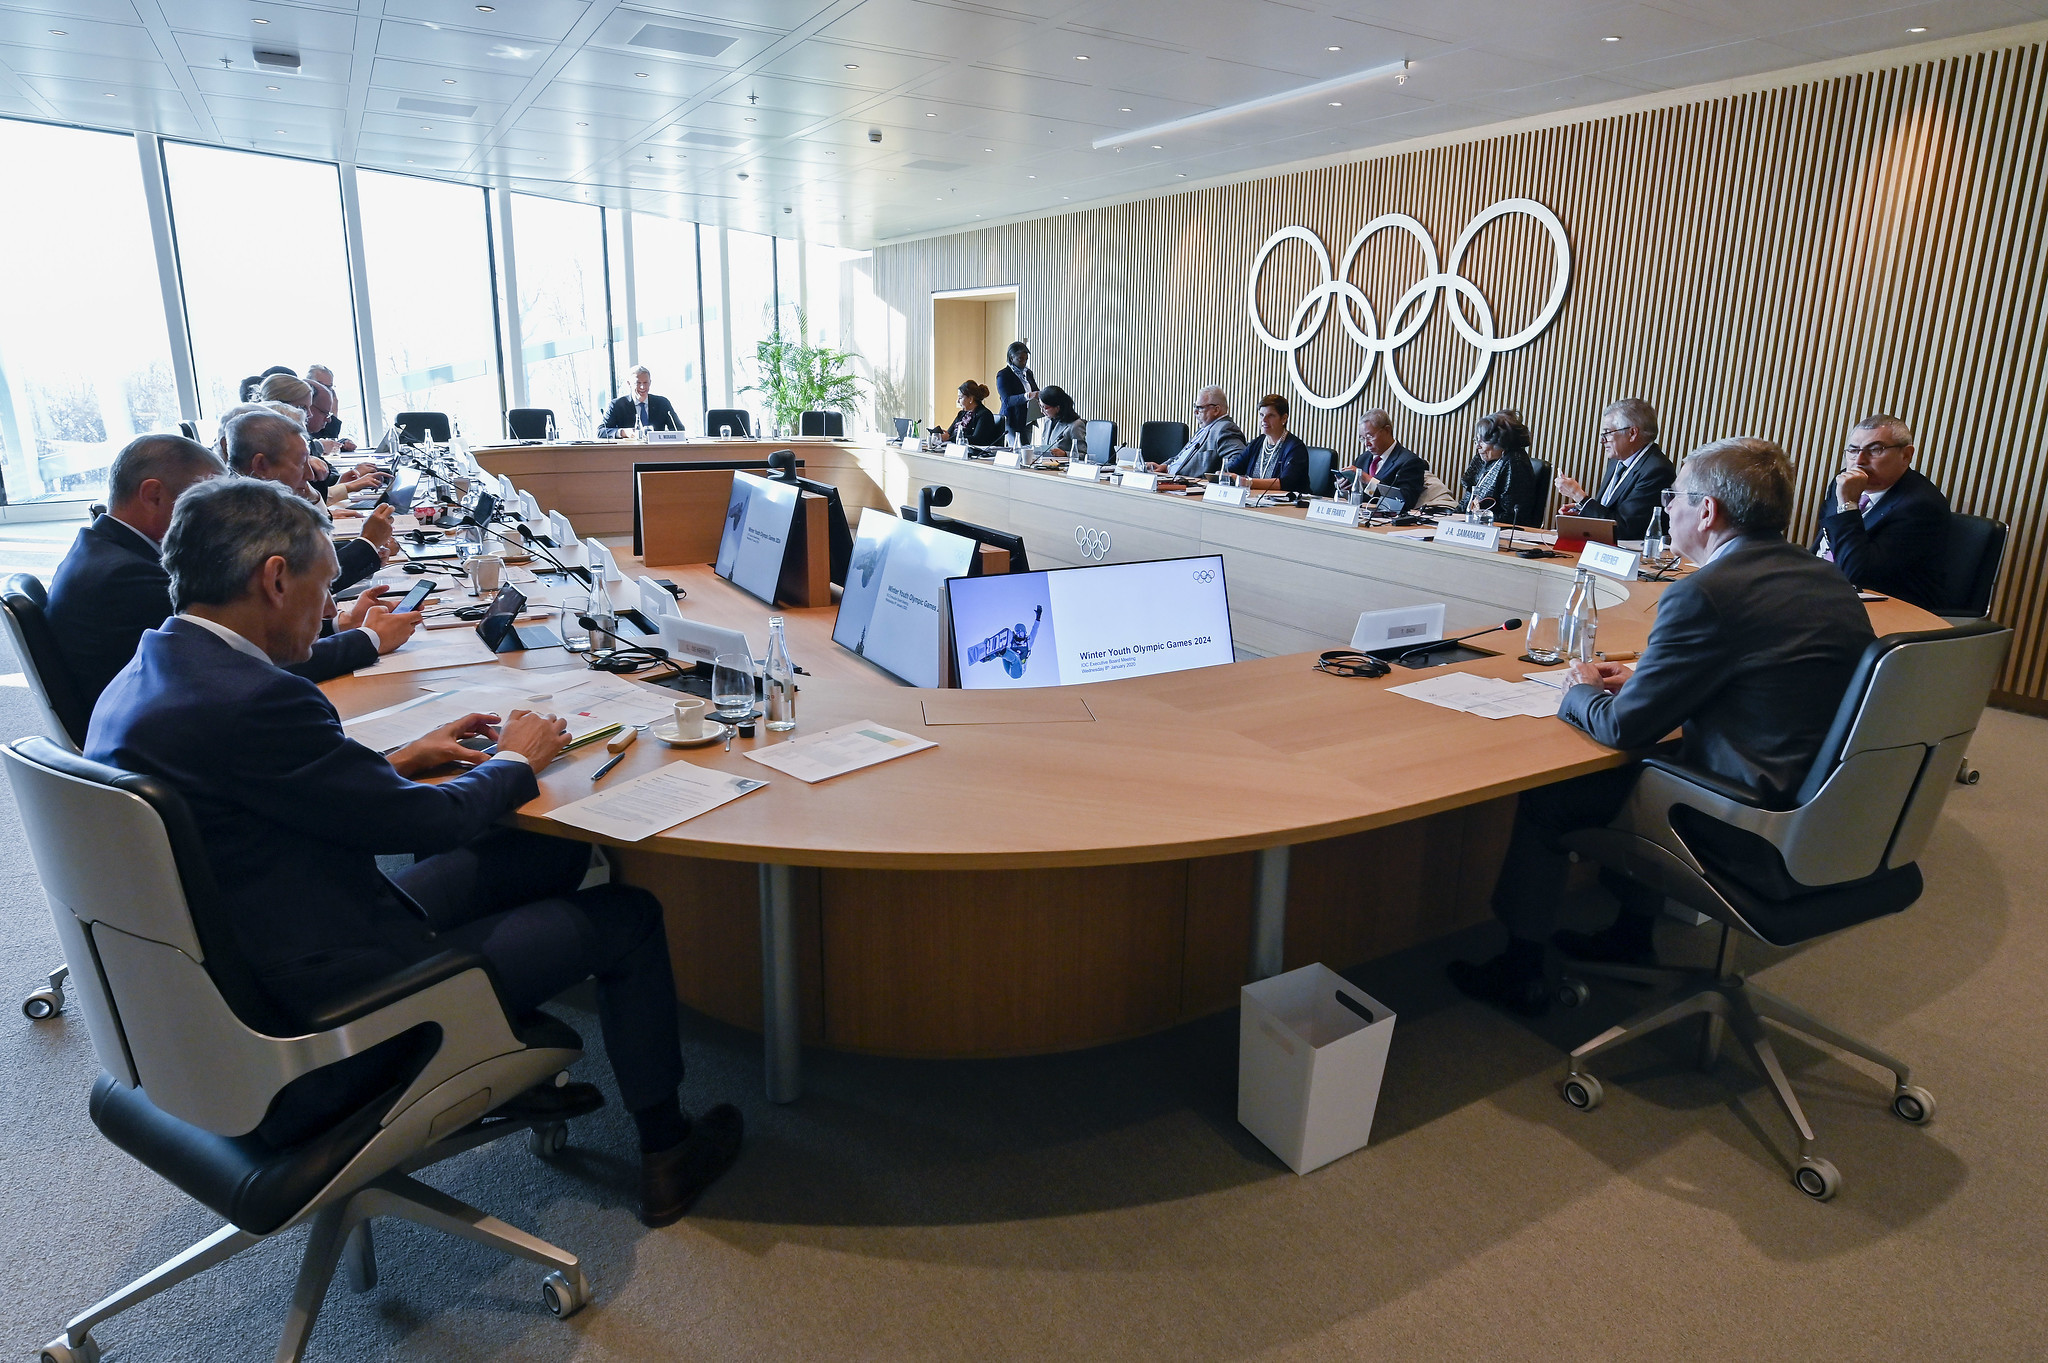 The Future Host Commission recommended Gangwon Province as the host of the 2024 Winter Youth Olympics to the Executive Board ©IOC